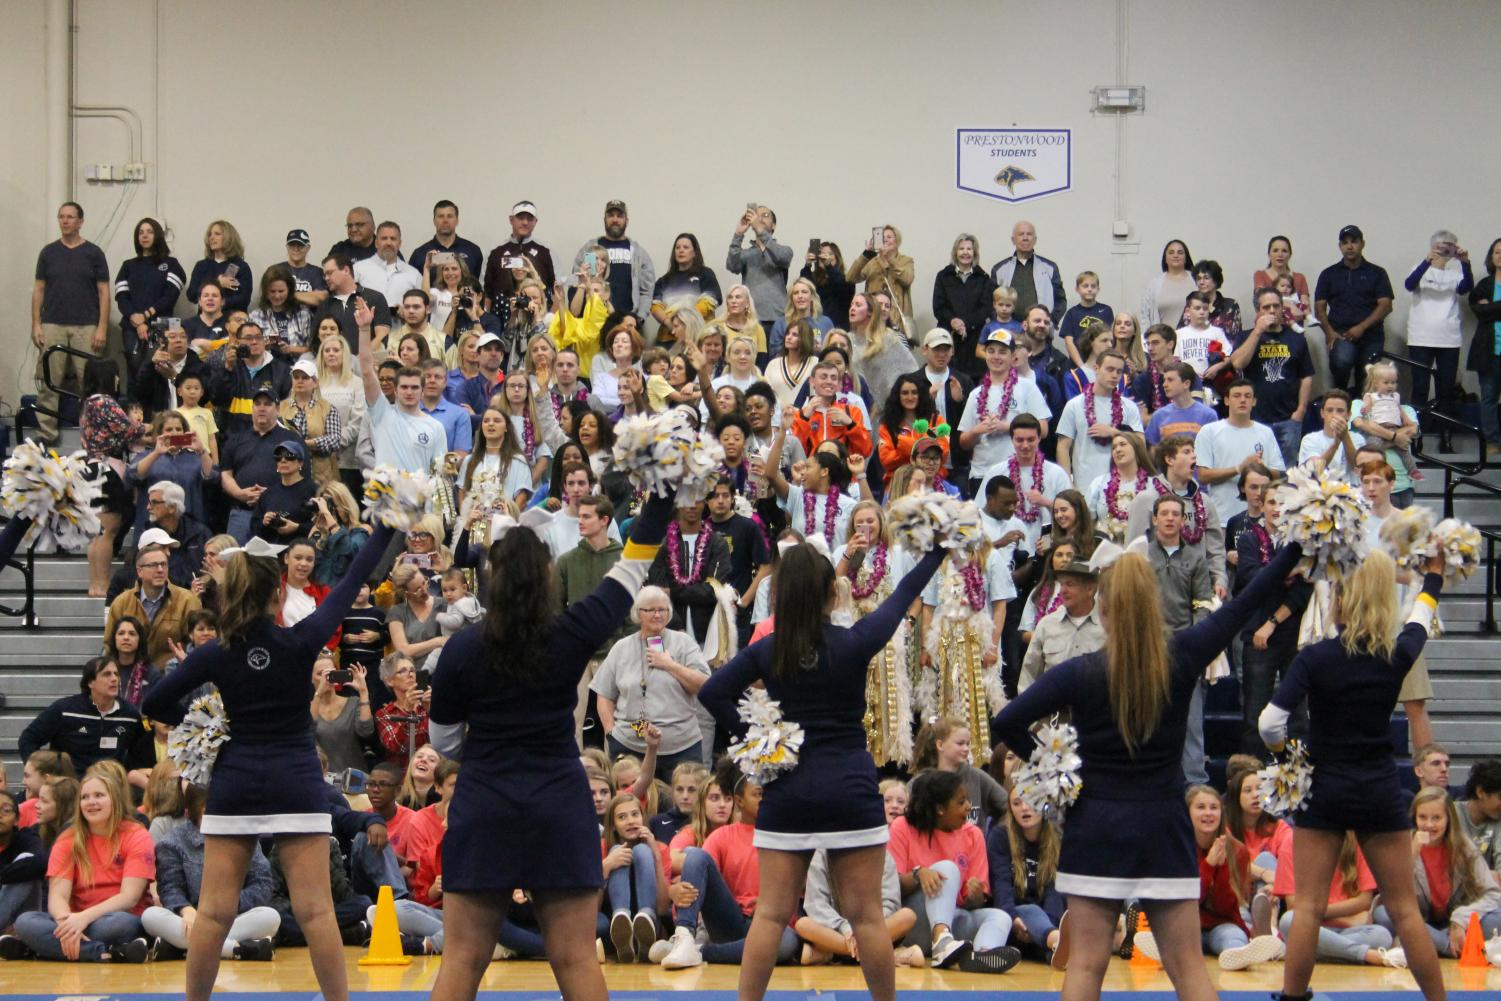 Cheerleaders+lead+the+students+and+their+grandparents+in+a+cheer+at+the+pep+rally.